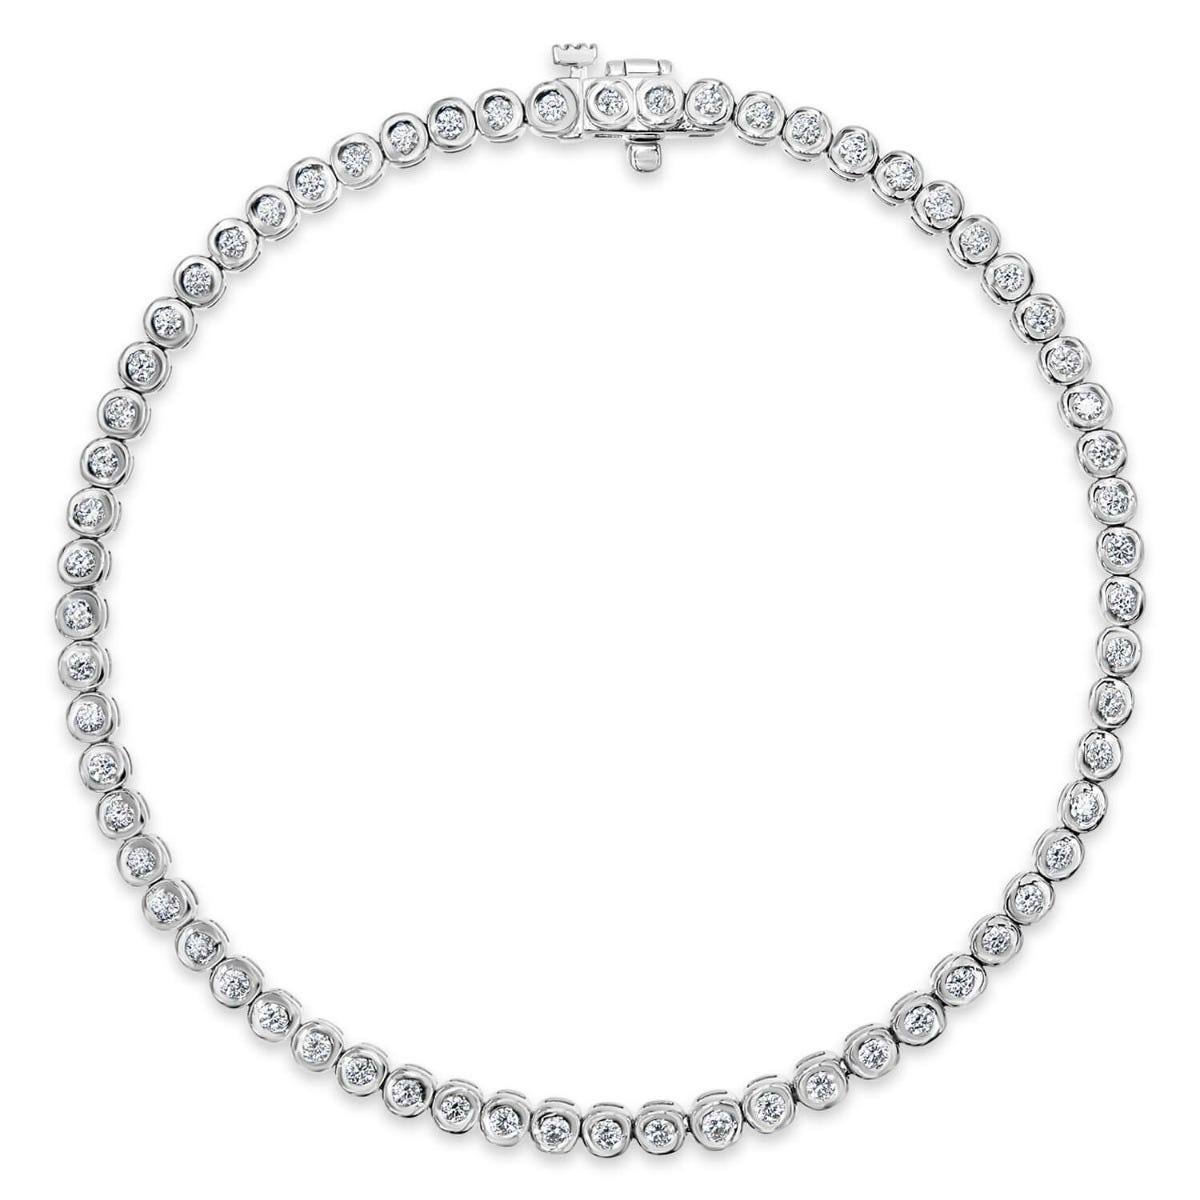 9ct white gold 1.00 carat diamond tennis bracelet